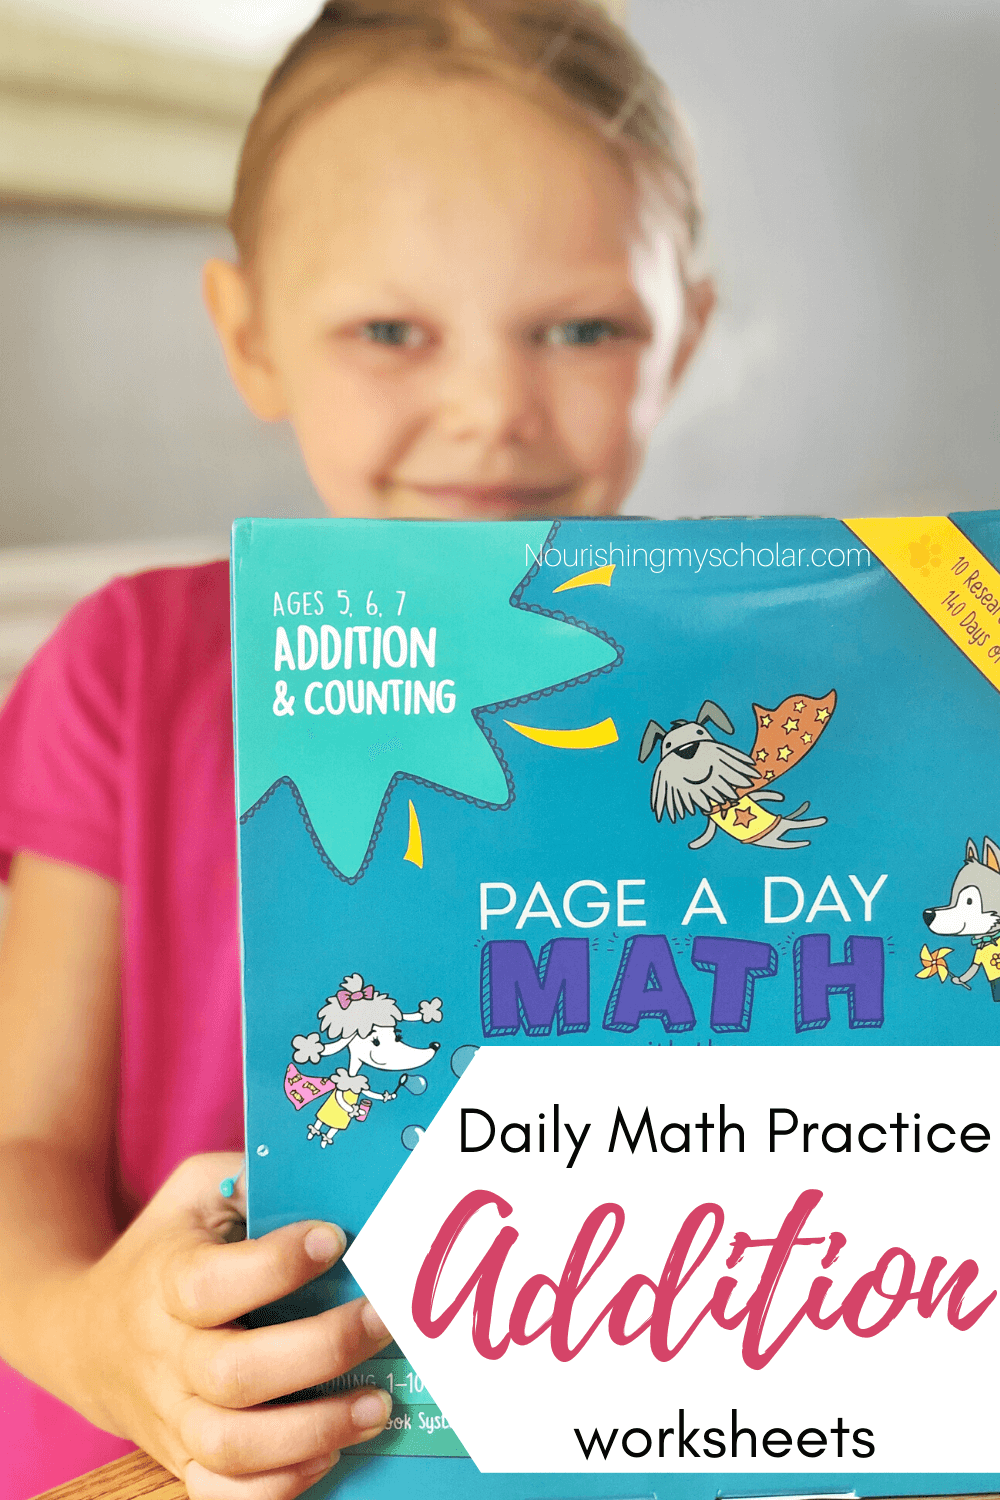 Daily Math Practice Addition Worksheets: Do you need addition math worksheets for your kindergartner or first grader? Maybe your kiddo needs a little extra help with their math confidence. These Page A Day Math booklets are perfect for kids needing daily math practice while building math fluency! #kindergartenmath #kindergarten #math #addition #firstgrade #mathworksheets #mathpractice #kindergartenadditionworksheets #additionforkindergarten #1stgradeaddition #firstgradeaddition #homeschool